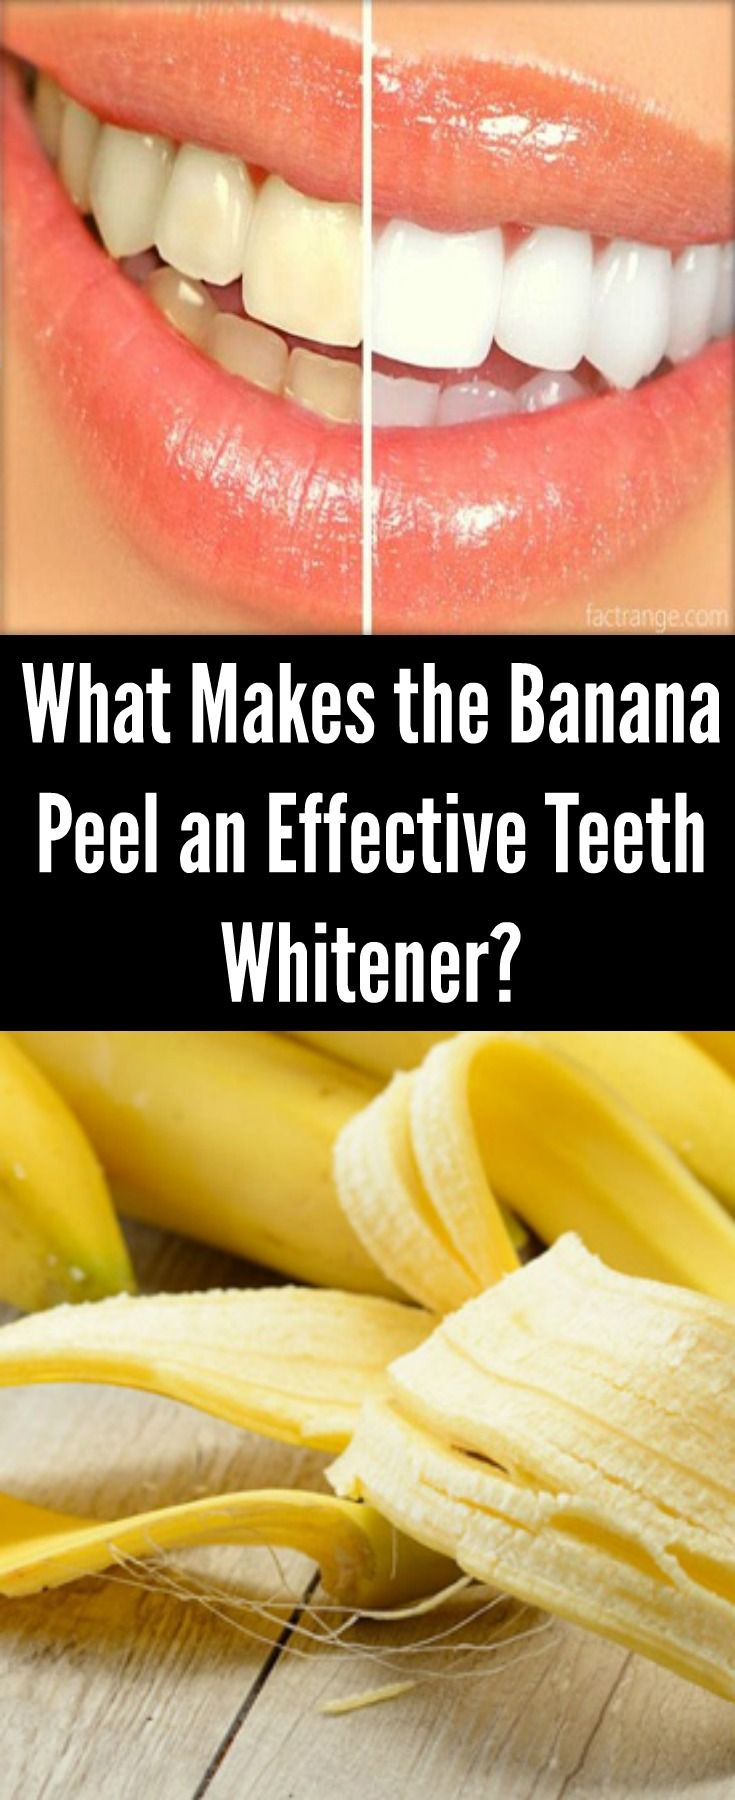 What Makes the Banana Peel an Effective Teeth Whitener?